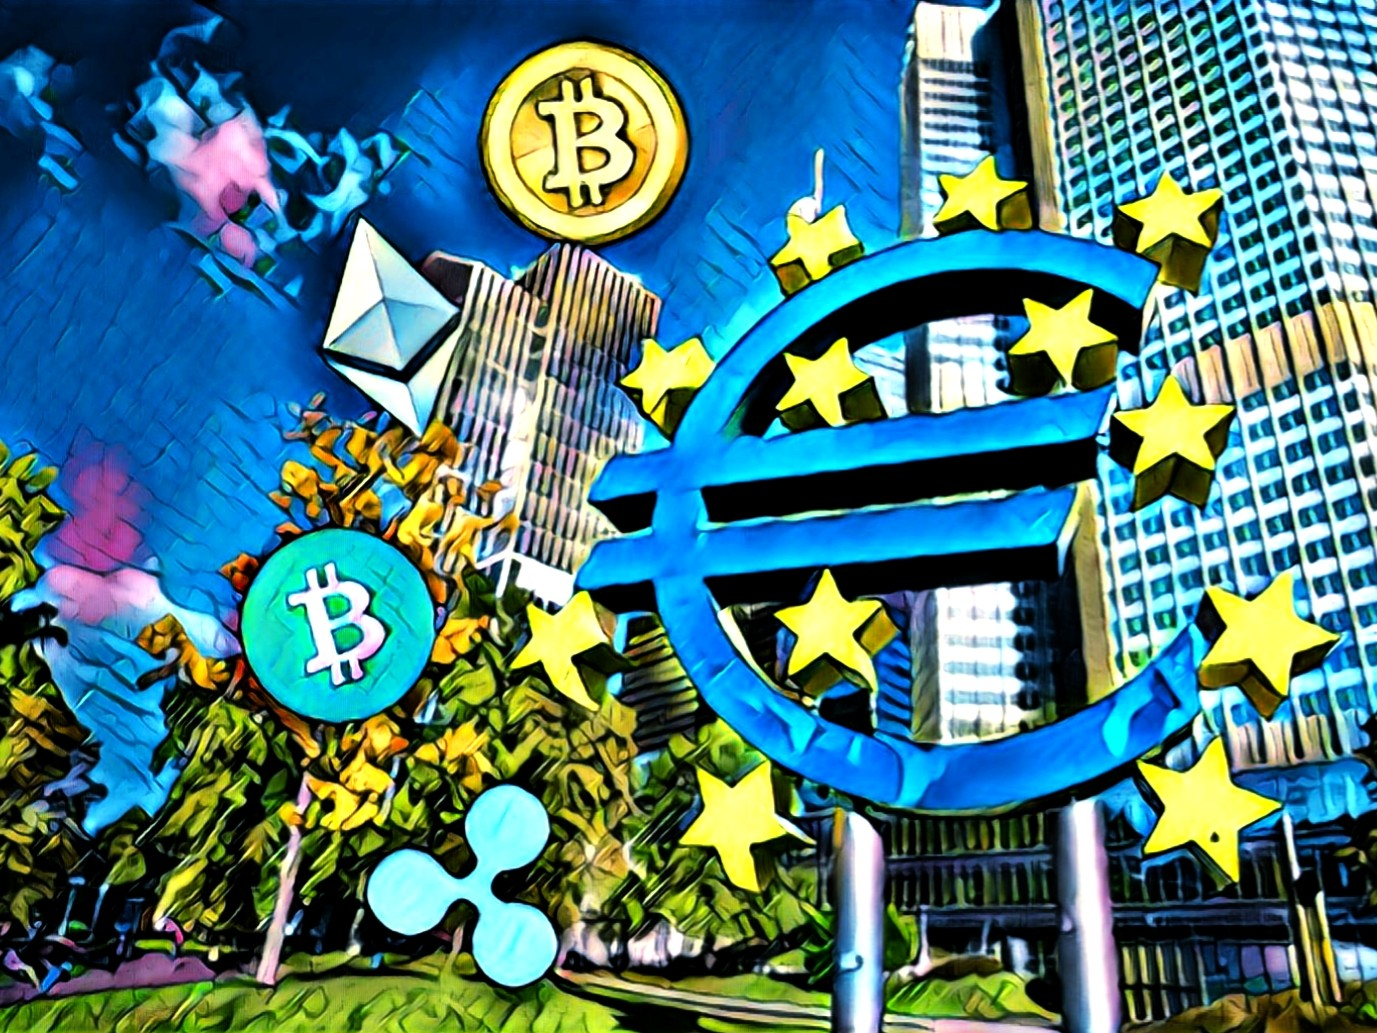 European Central Bank BTC ETH BCH XRP